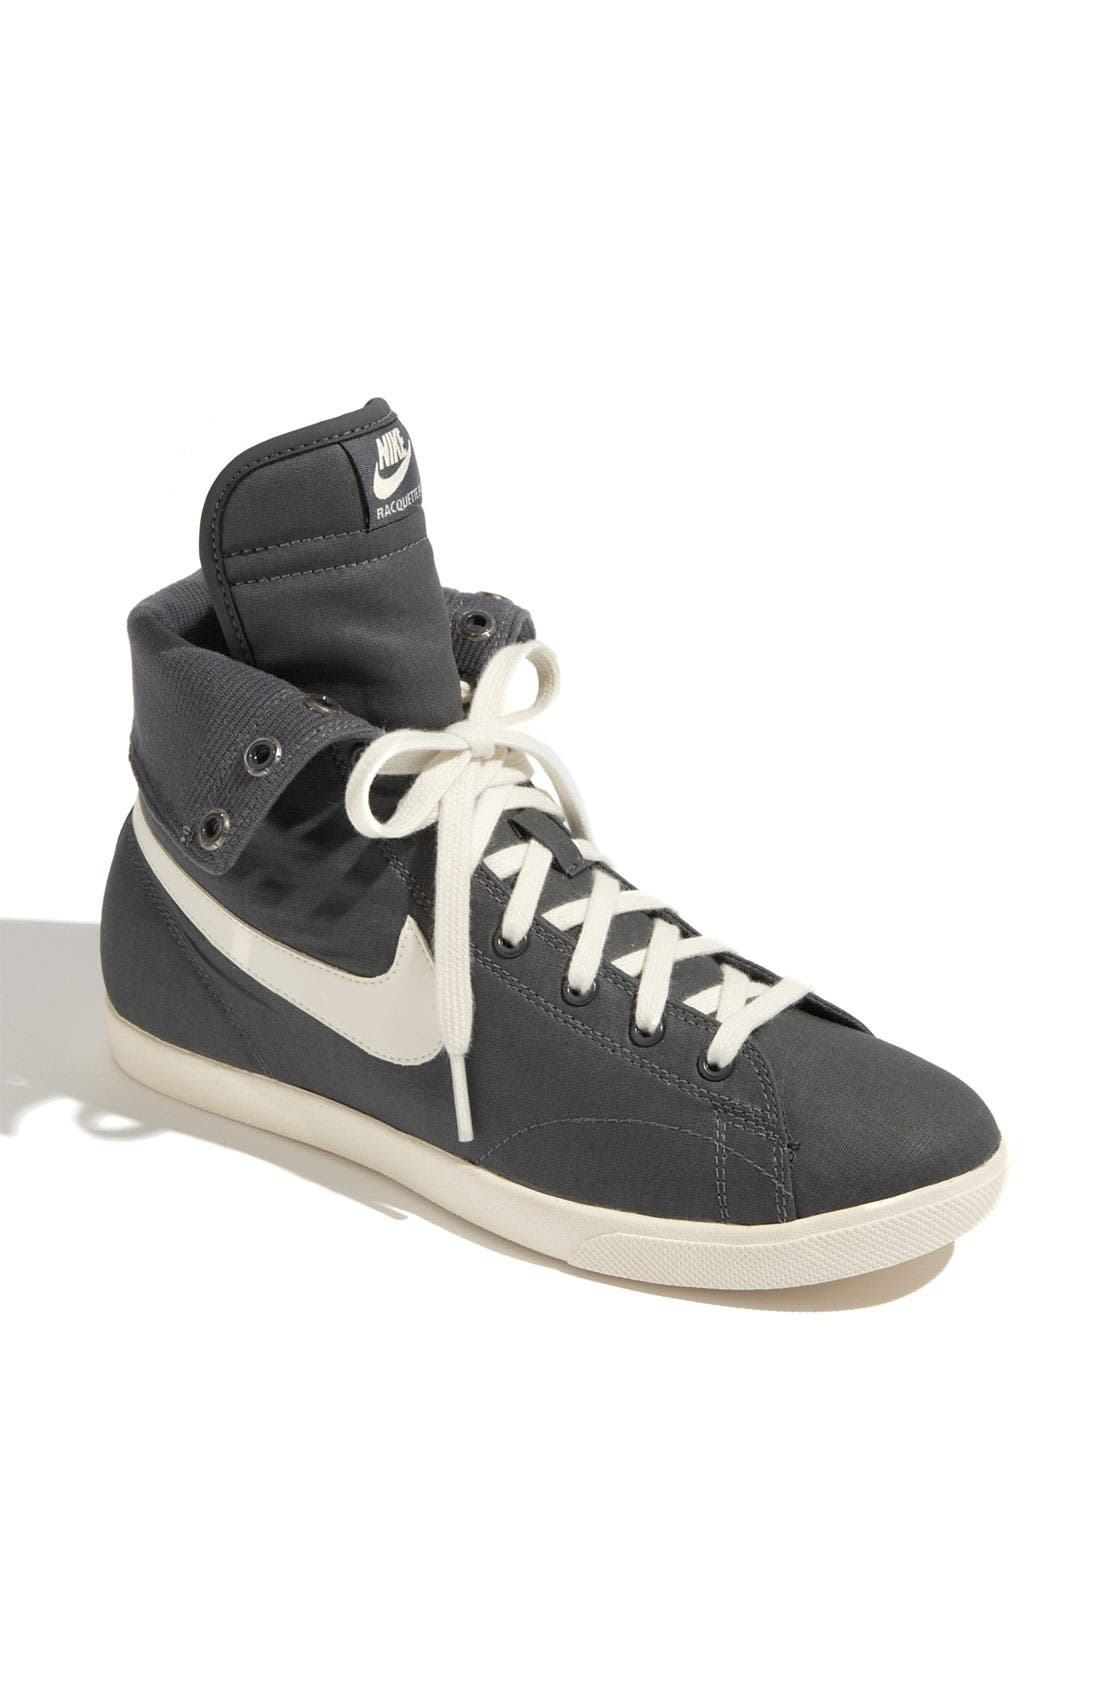 Alternate Image 1 Selected - Nike 'Raquette Mid' High Top Sneaker